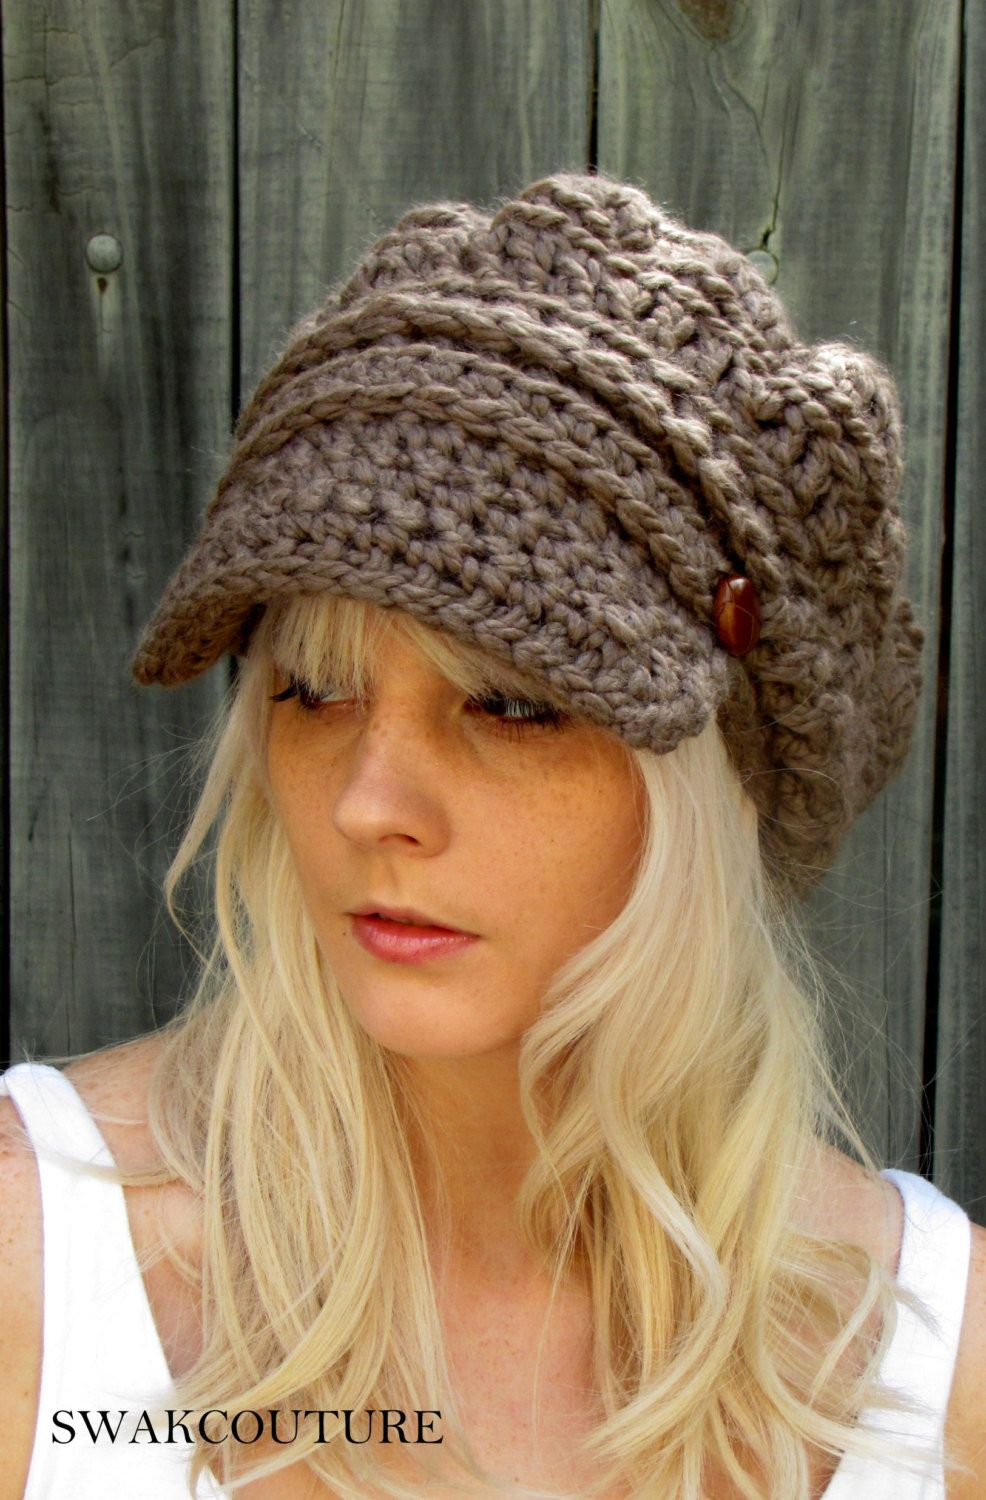 f4f0f63e549 crochet slouchy hat with brim pattern Popular items for crochet newsboy hat  on Etsy image